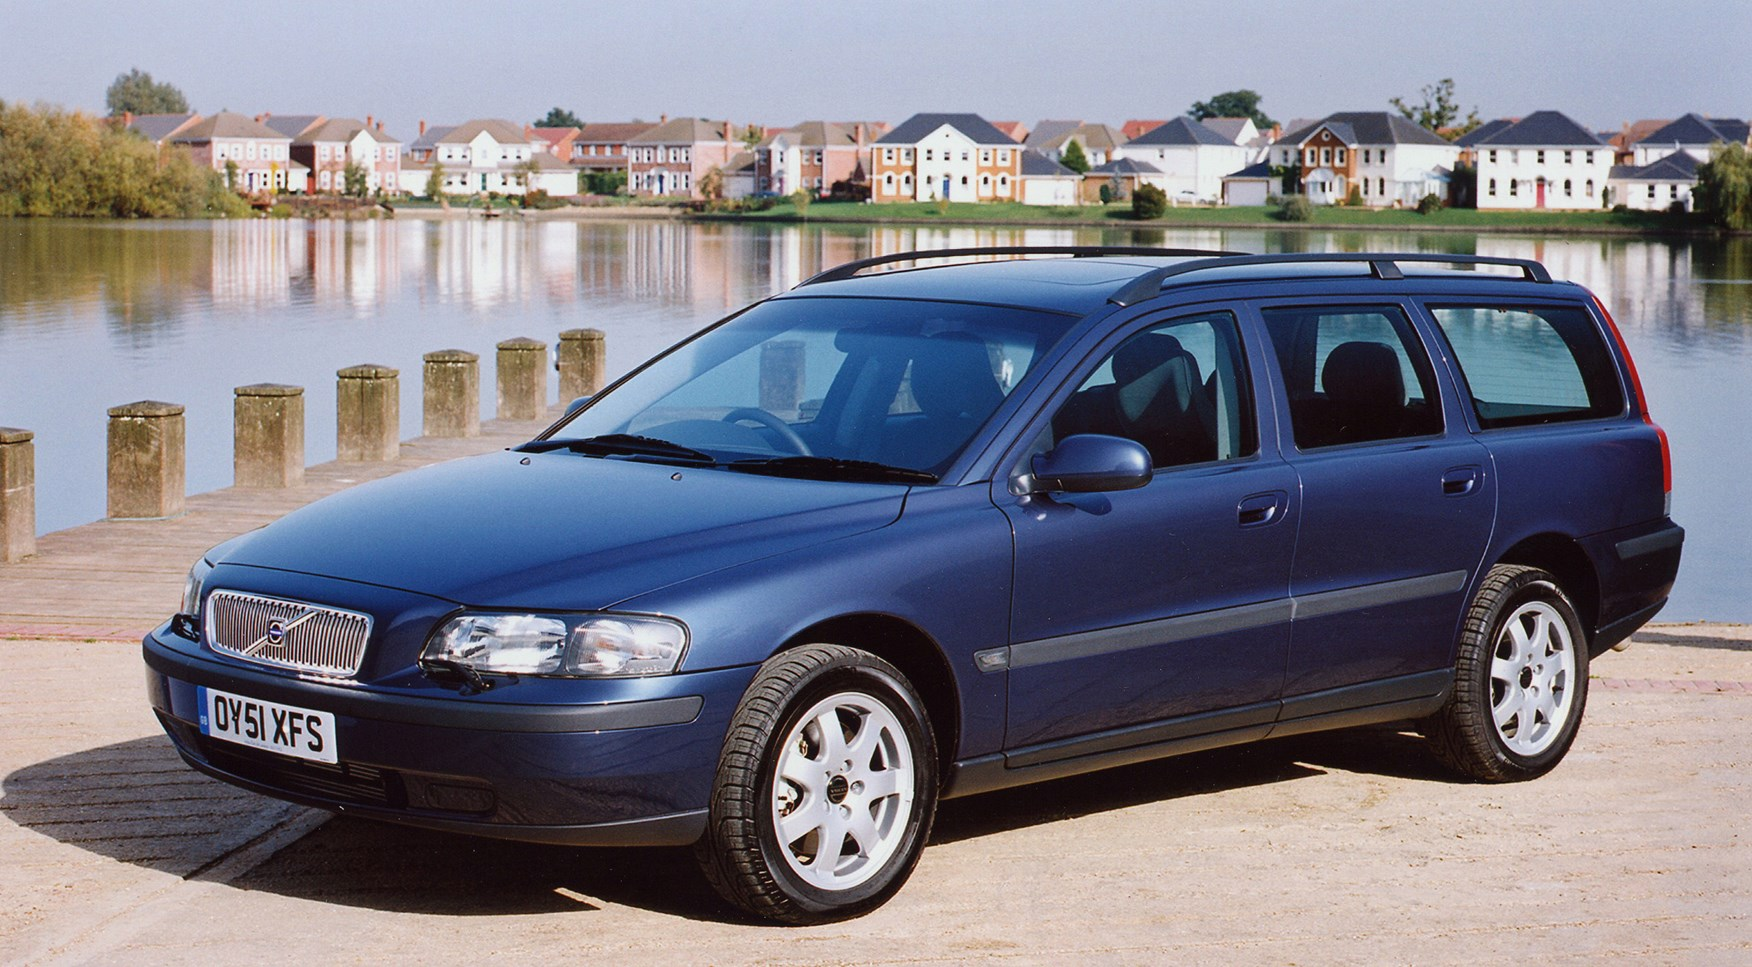 Used Volvo V70 Estate (2000 - 2007) Review | Parkers